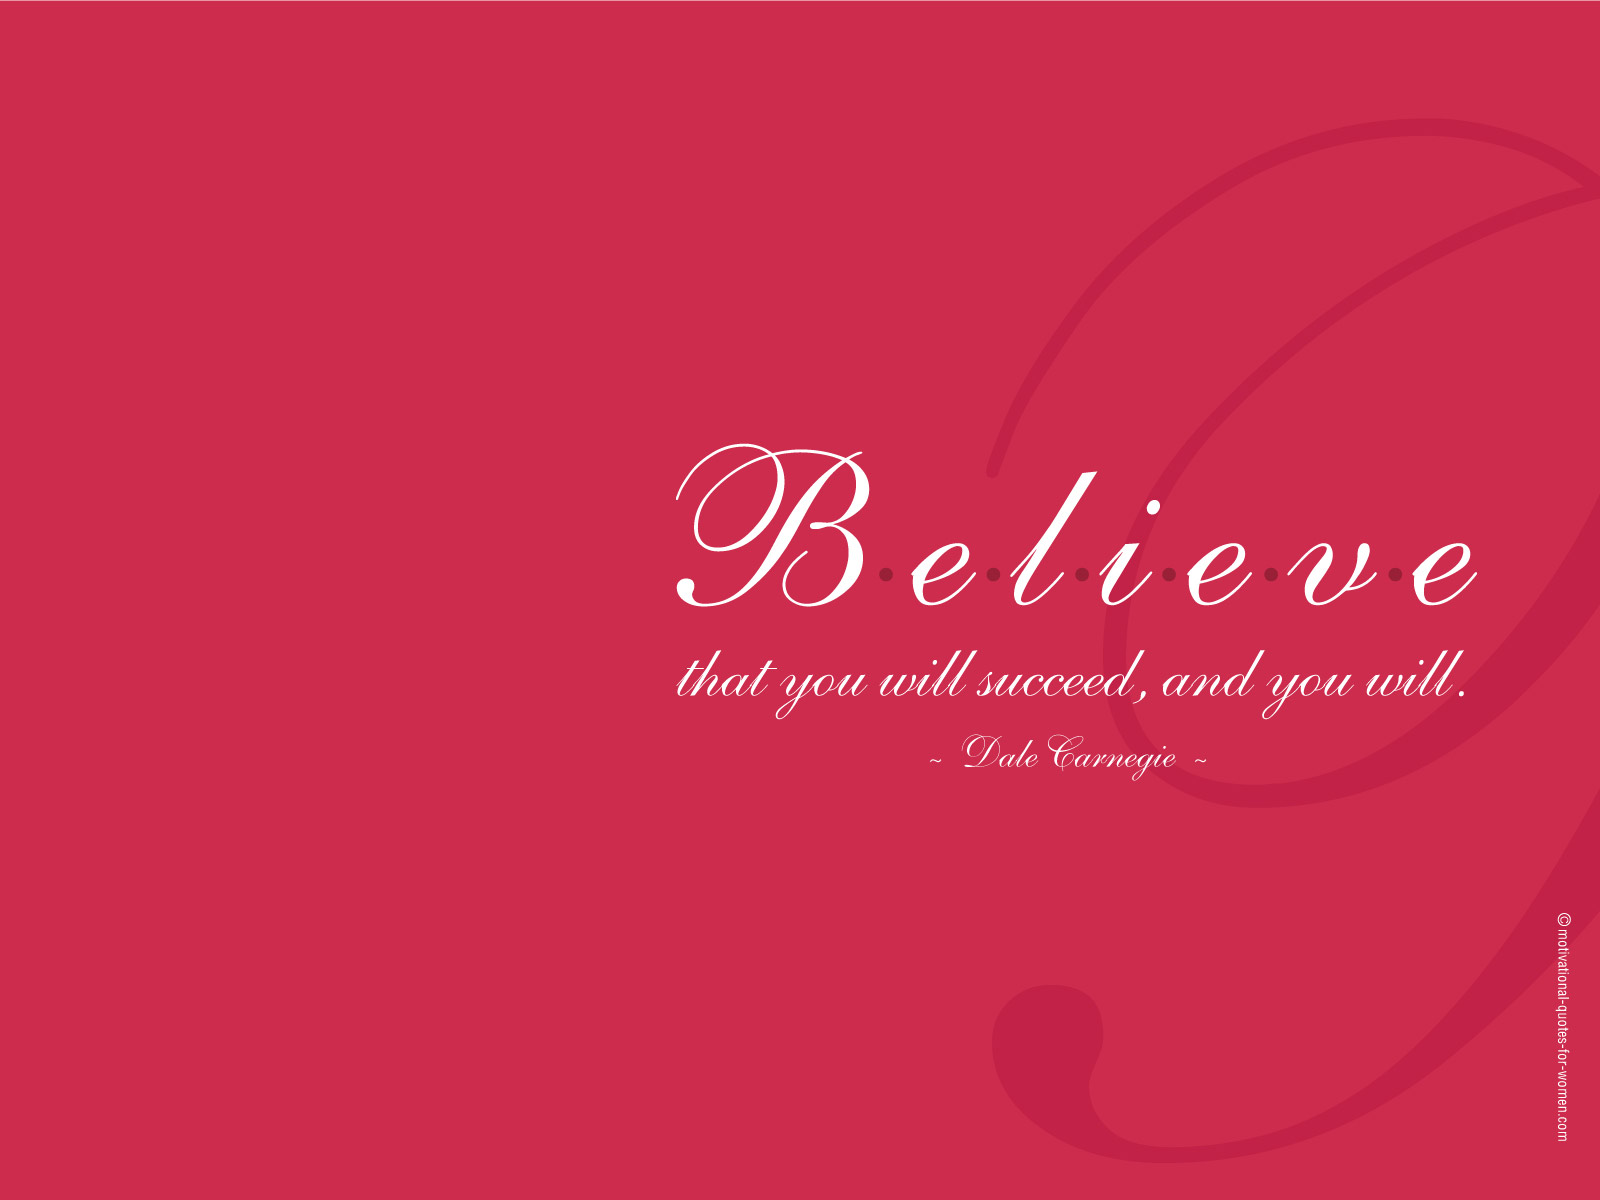 Free Inspirational Quotes Free Inspirational Wallpapers With Quotes  Wallpapersafari